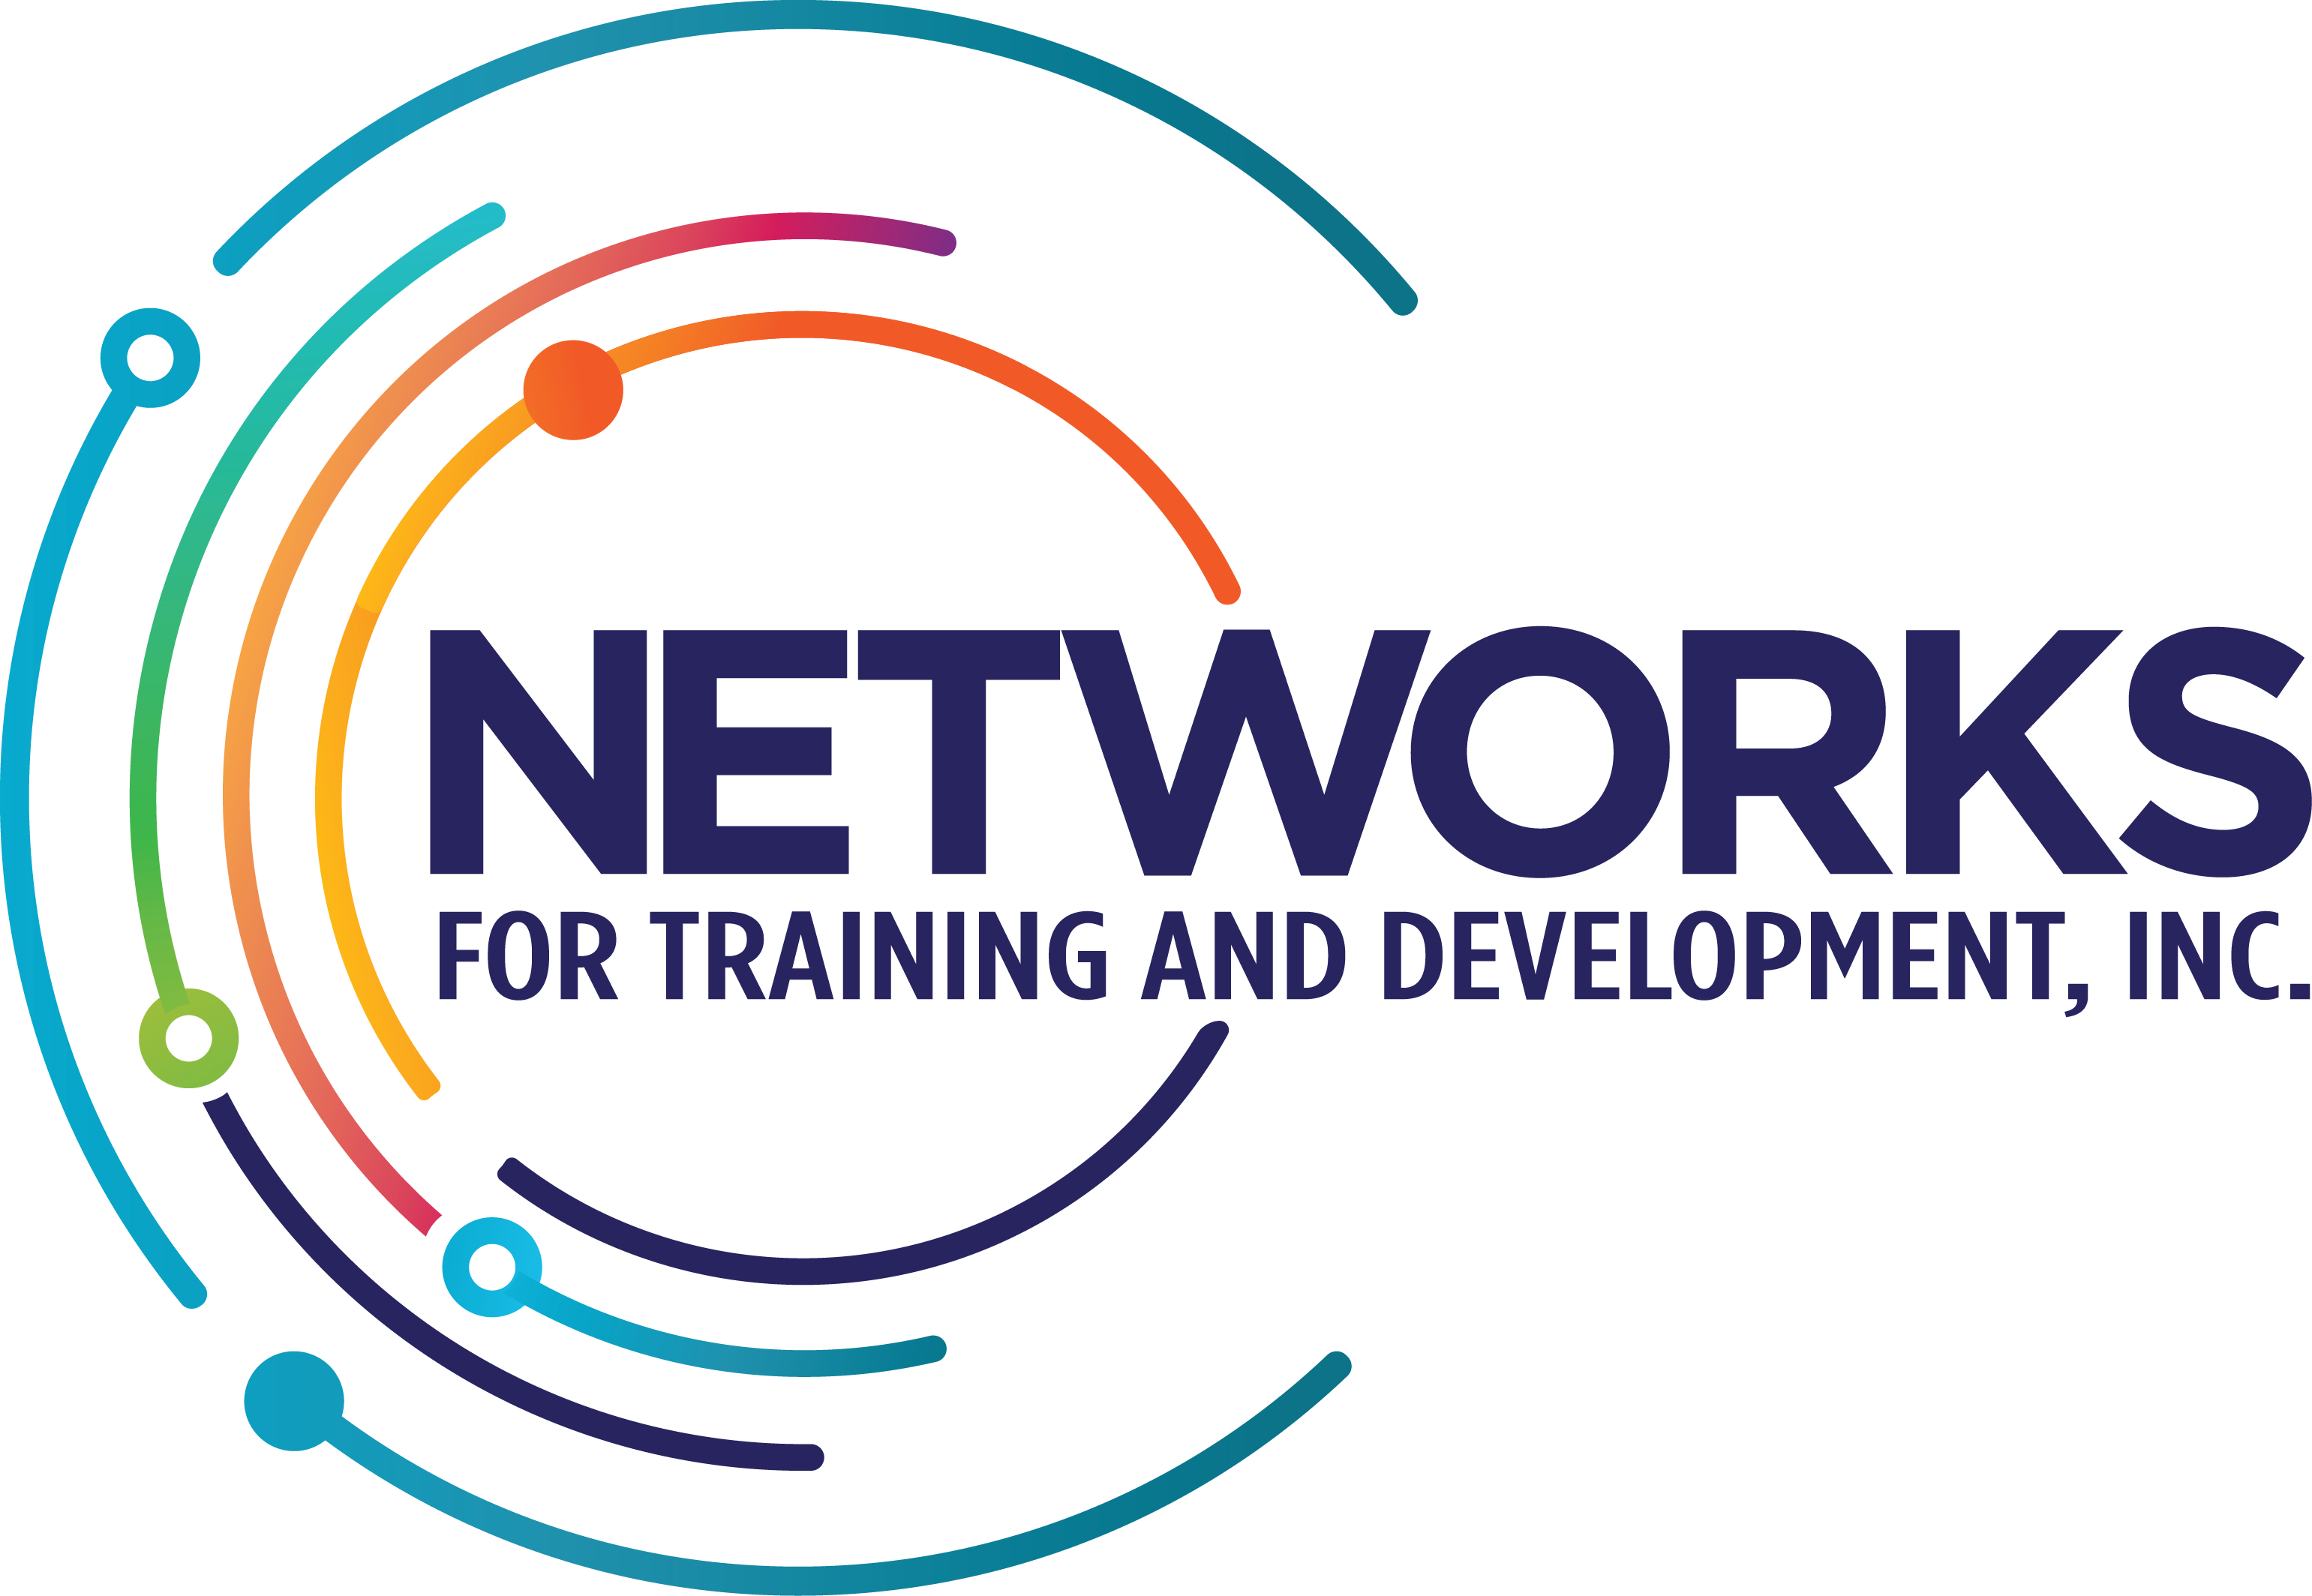 Networks for Training and Development Inc logo.